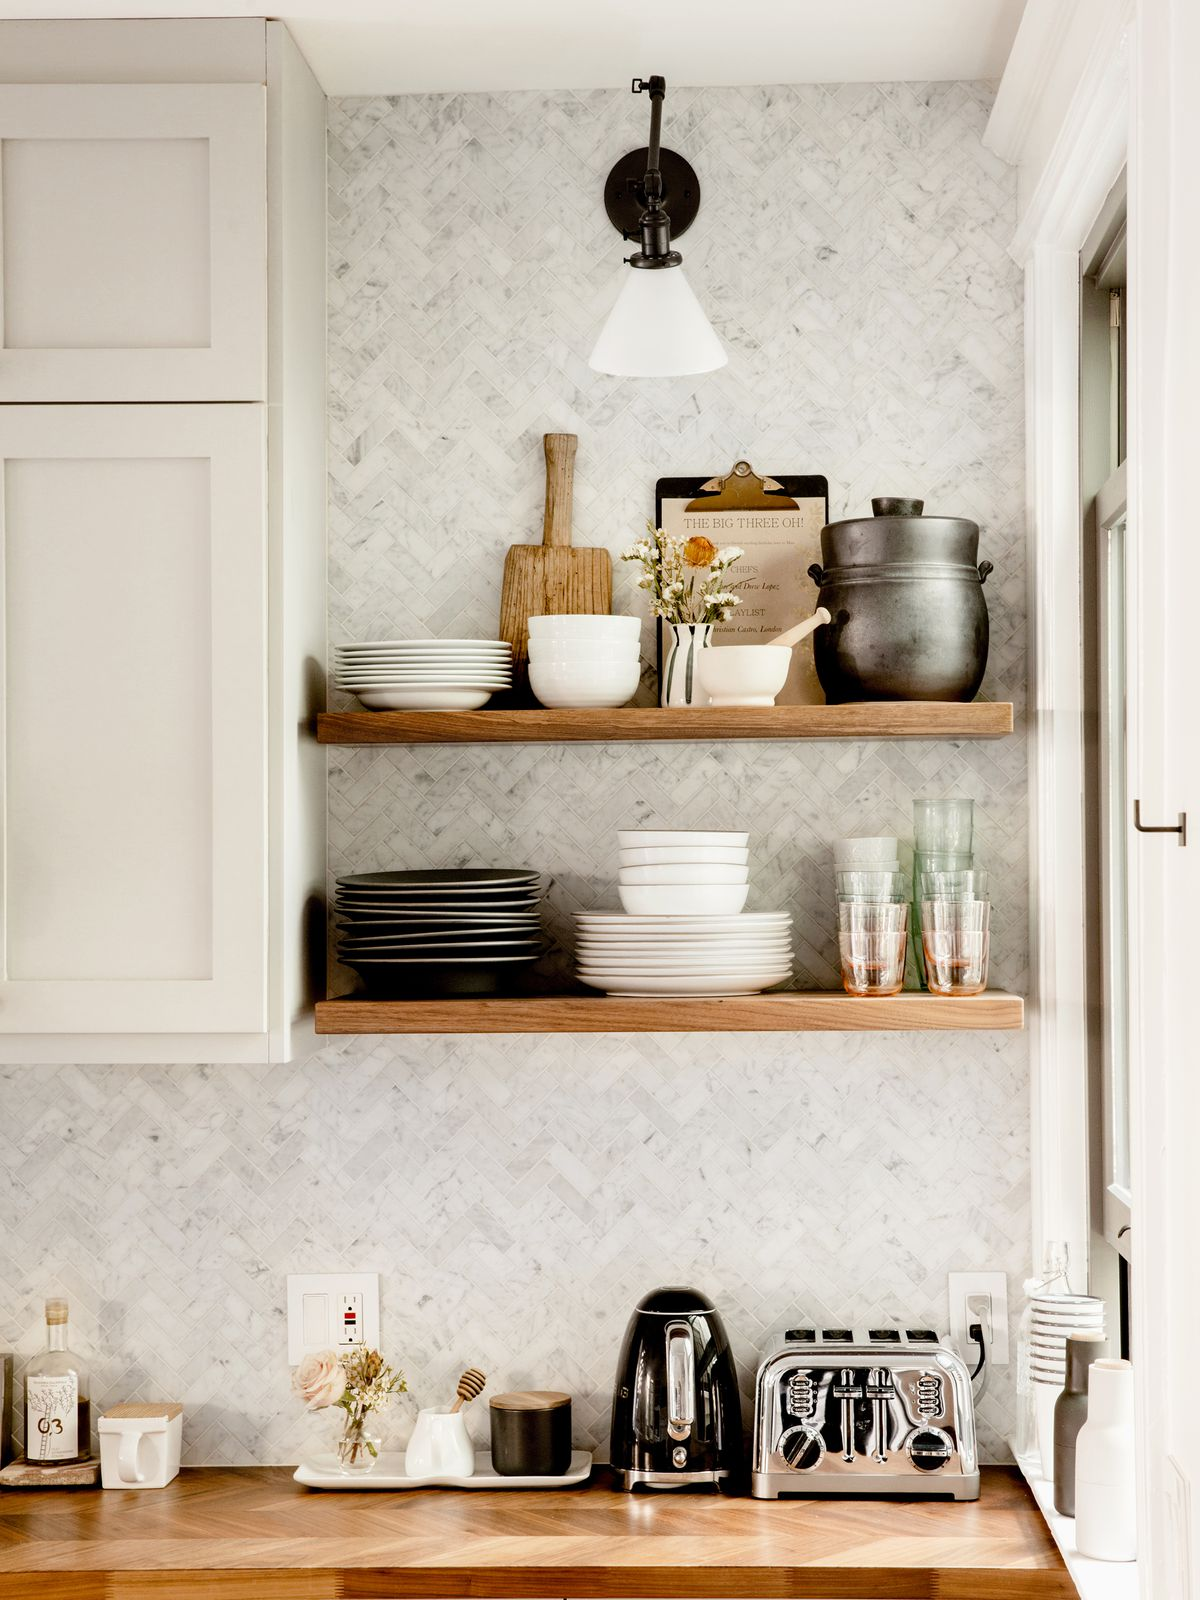 Wooden shelves above a kitchen countertop hold various kitchen objects and appliances. There is a toaster, kettle, and other kitchen objects on the countertop. The wall is decorated in grey and white patterned wallpaper. The cabinetry is white.